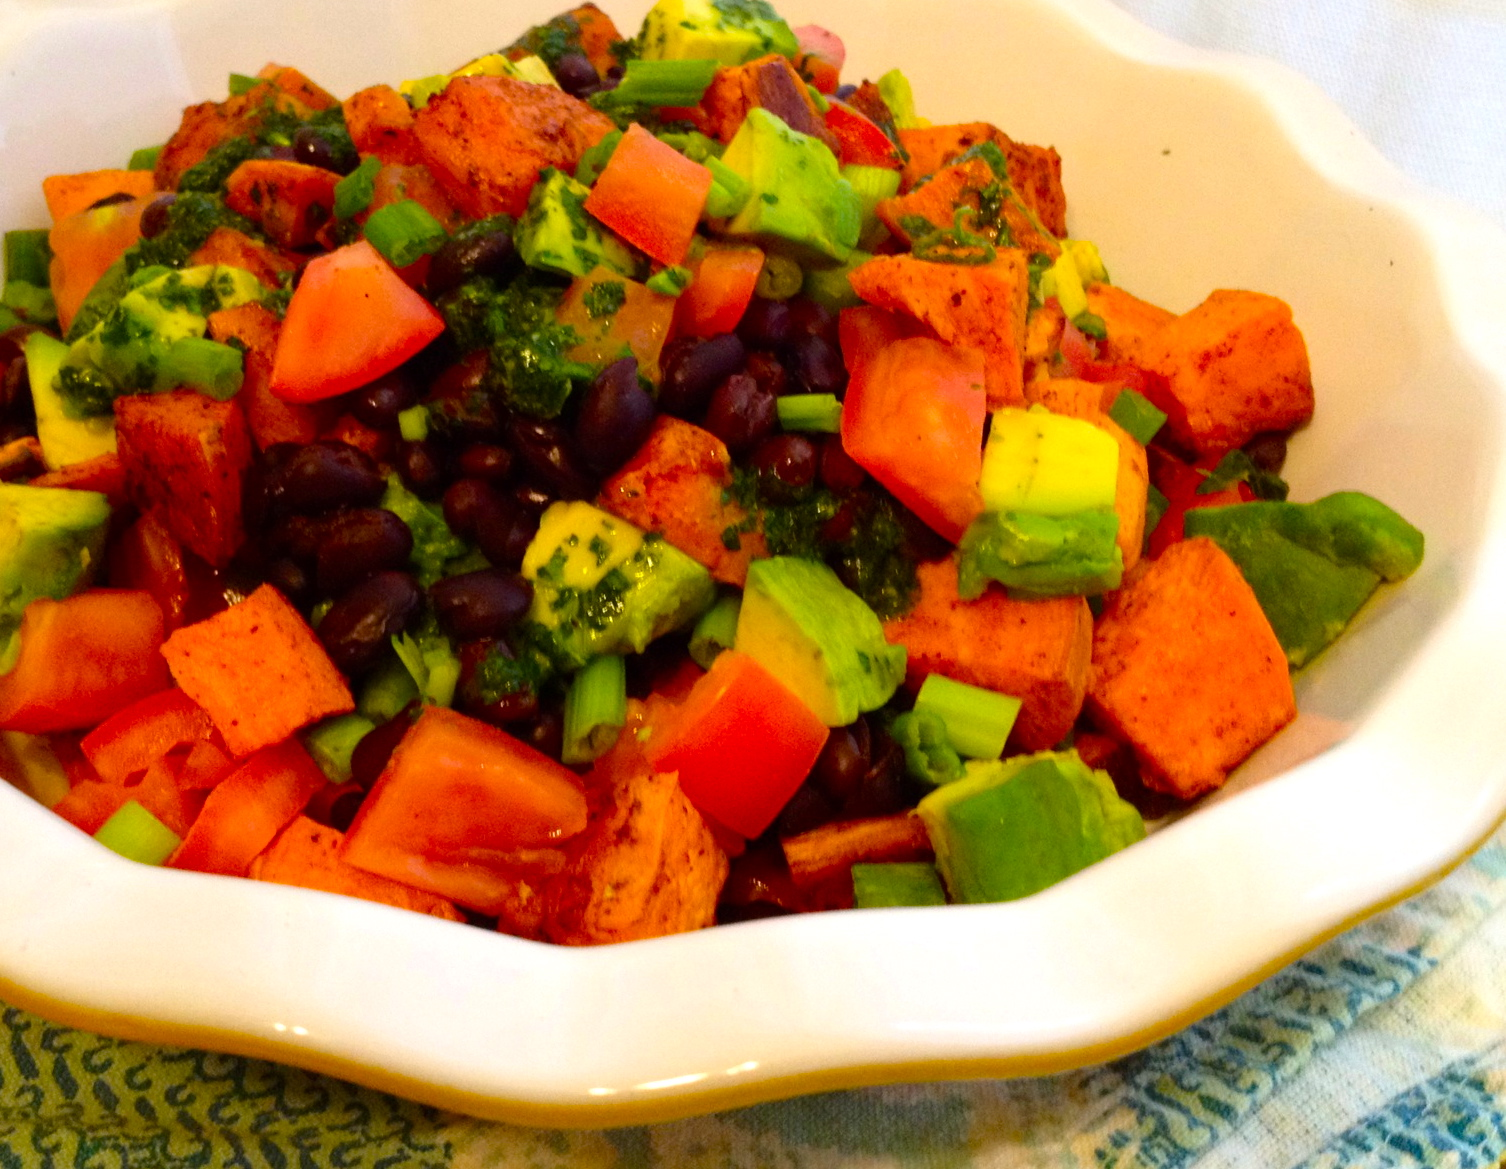 ... Sweet Potato Salad with Black Beans, Avocados and Cilantro Lime